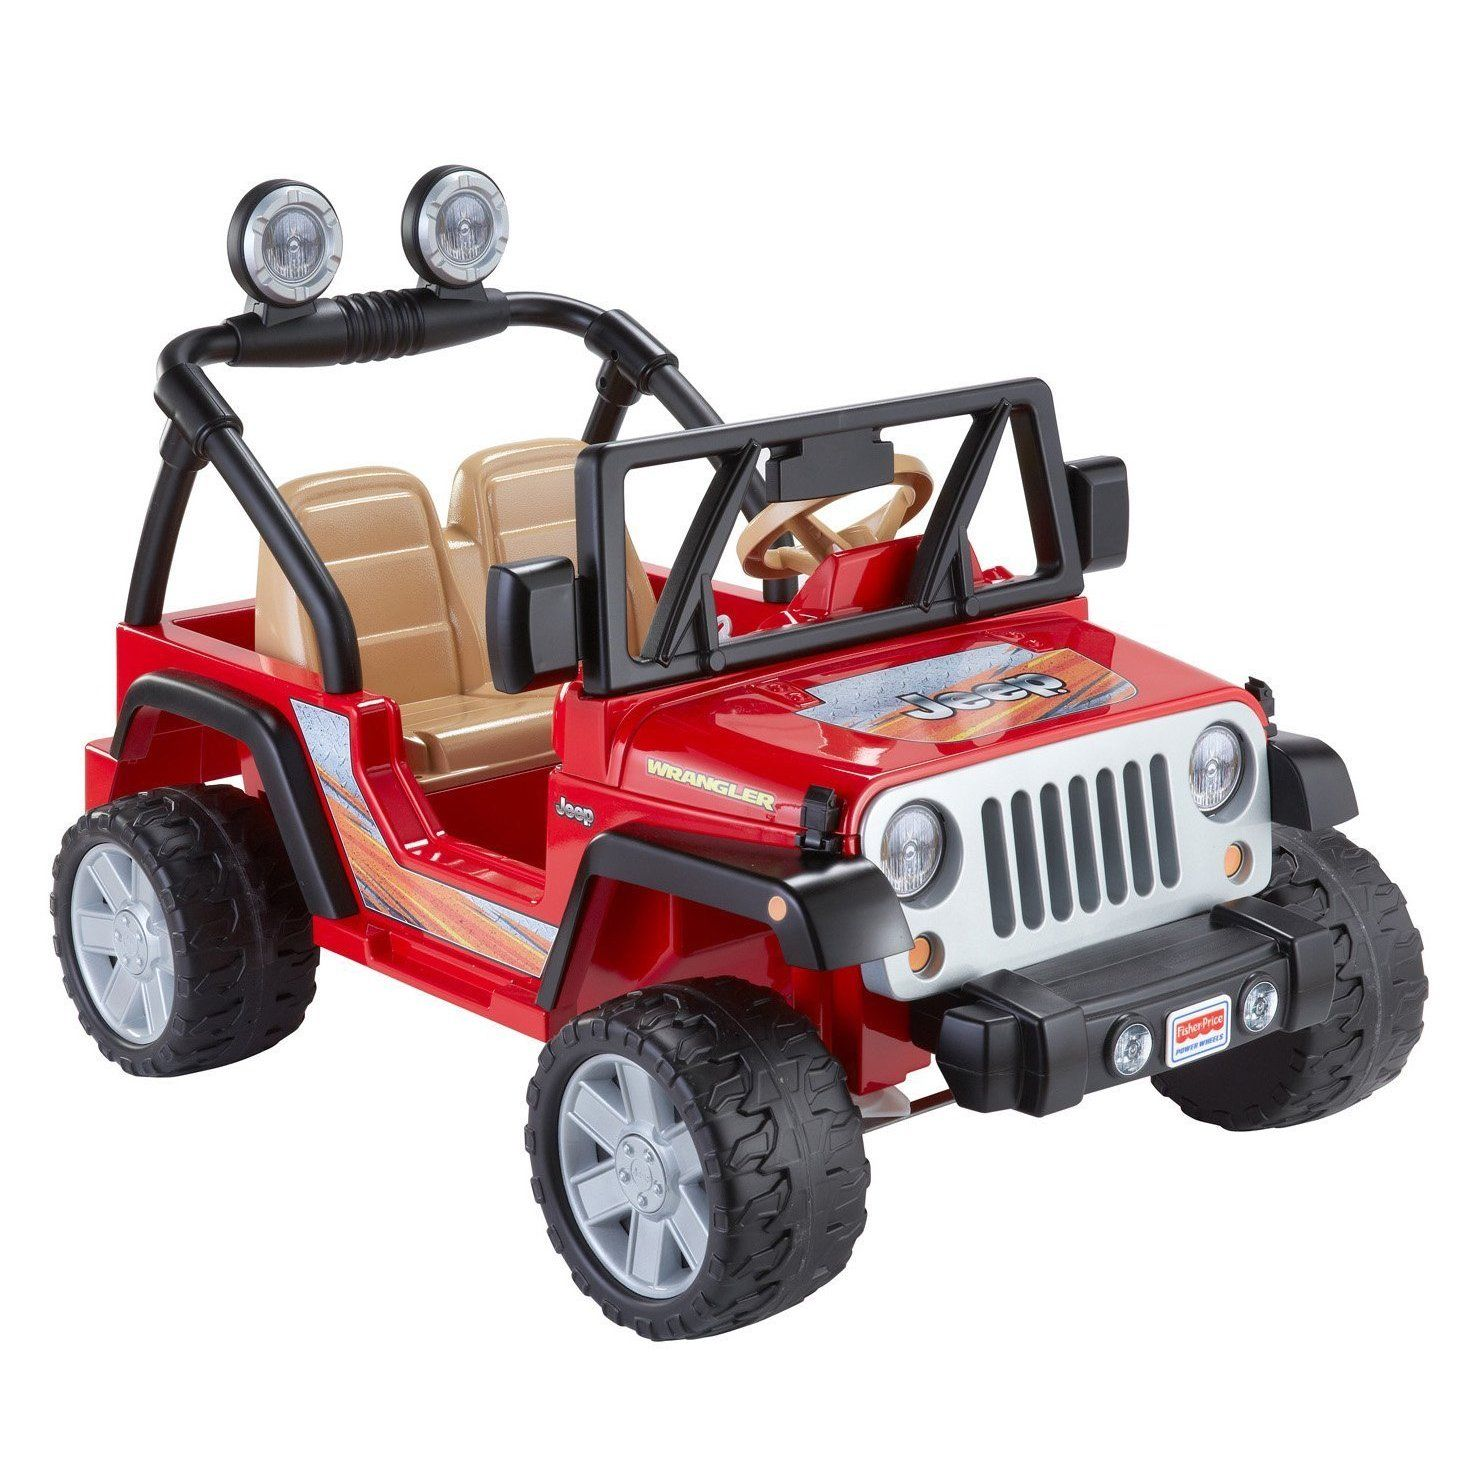 Jeep car toys  Fisher Price Power Wheels Jeep Wrangler Green  Products